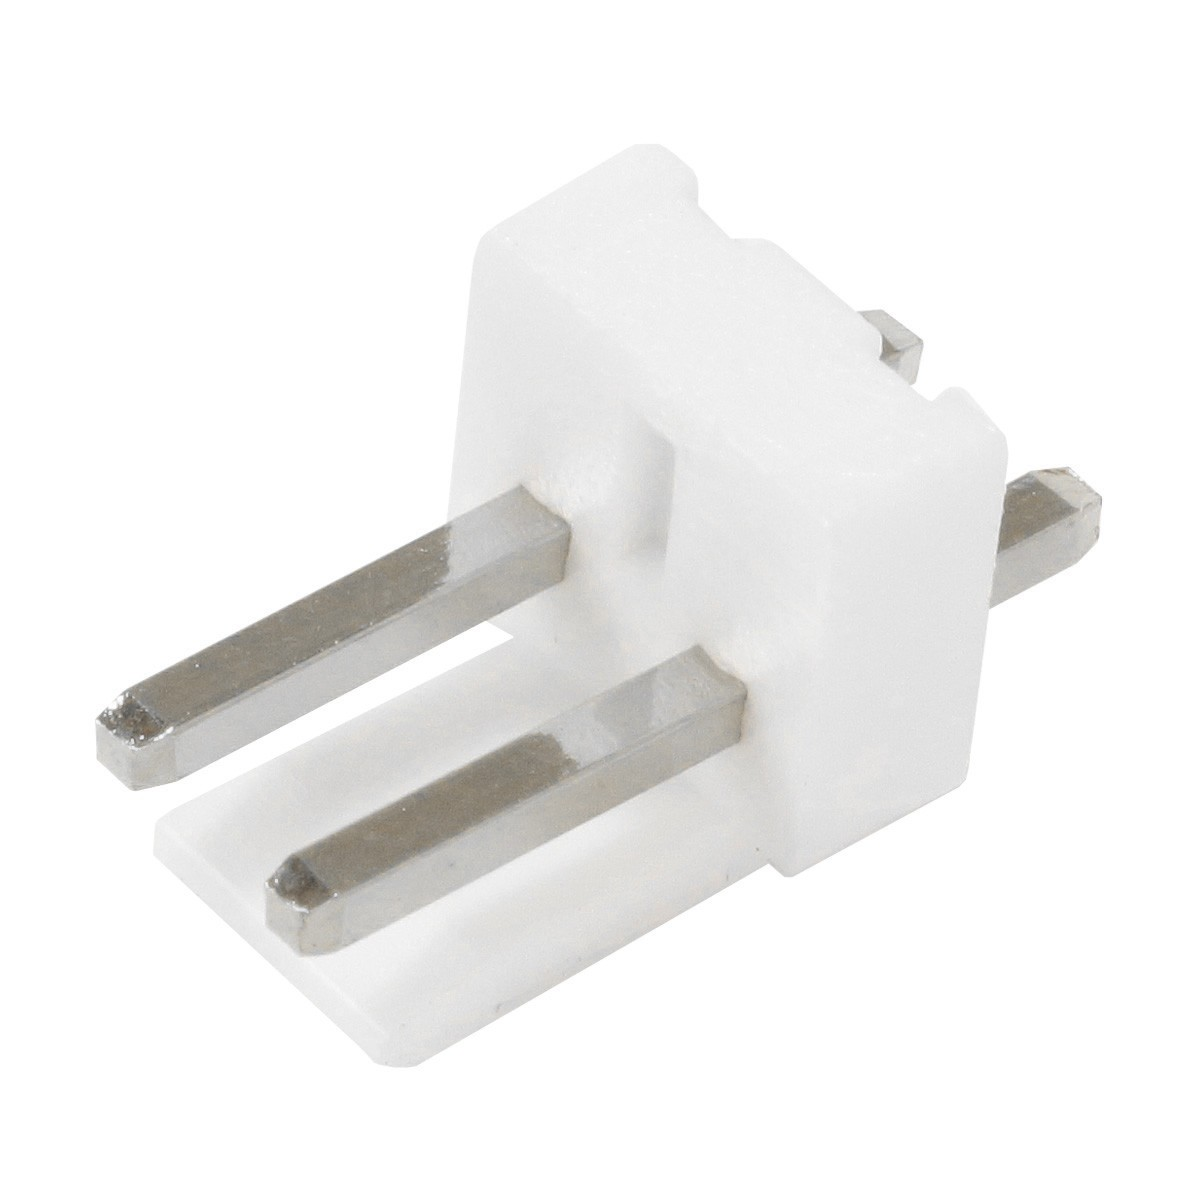 VH 3.96mm Male Socket 2 Channels White (Unit)